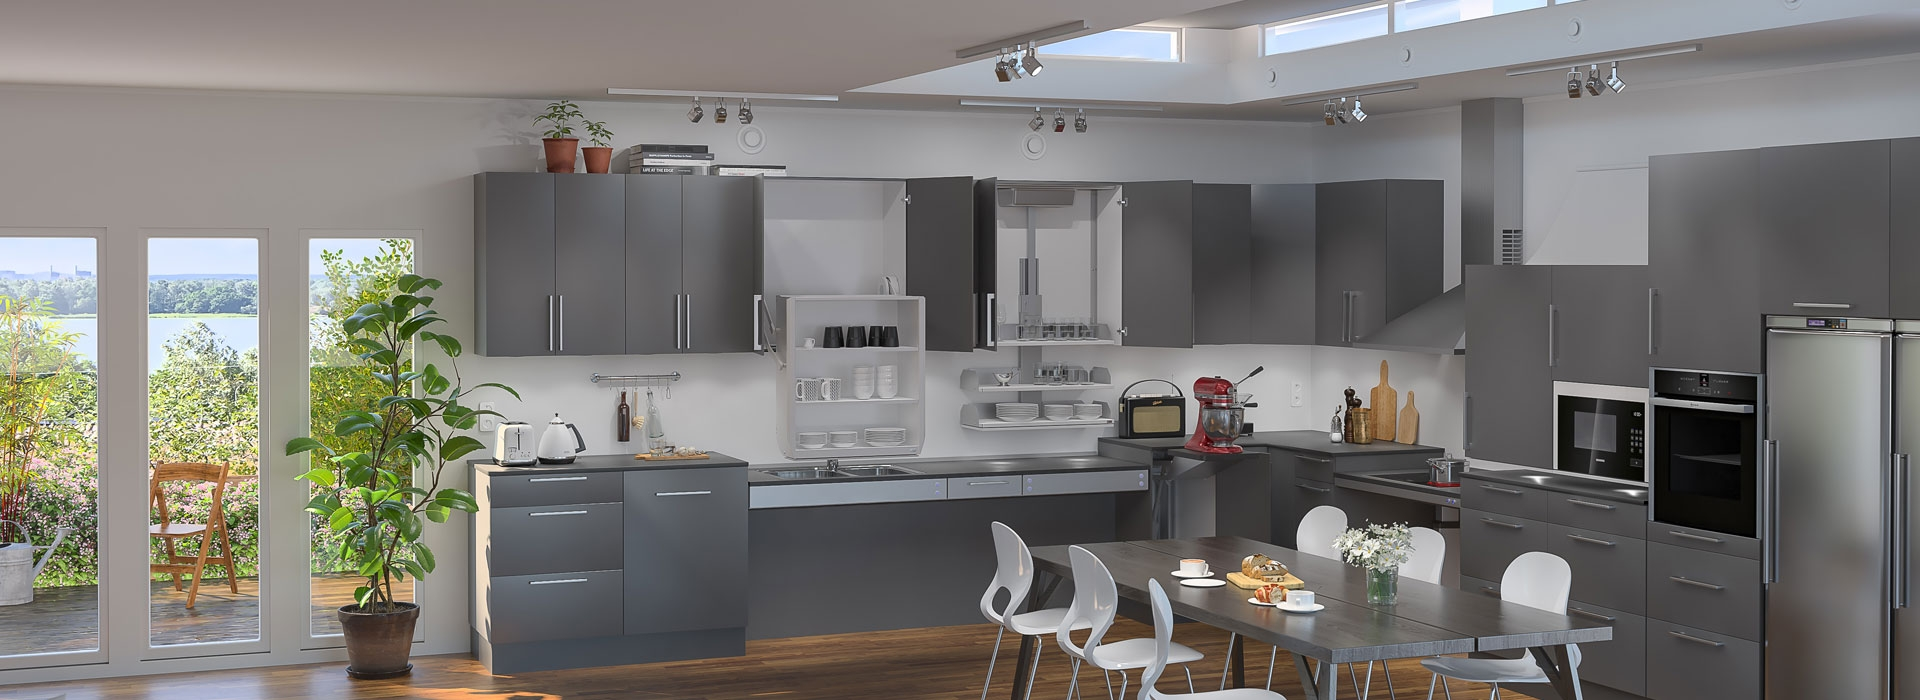 <h2>Height Adjustable Kitchen Systems</h2>